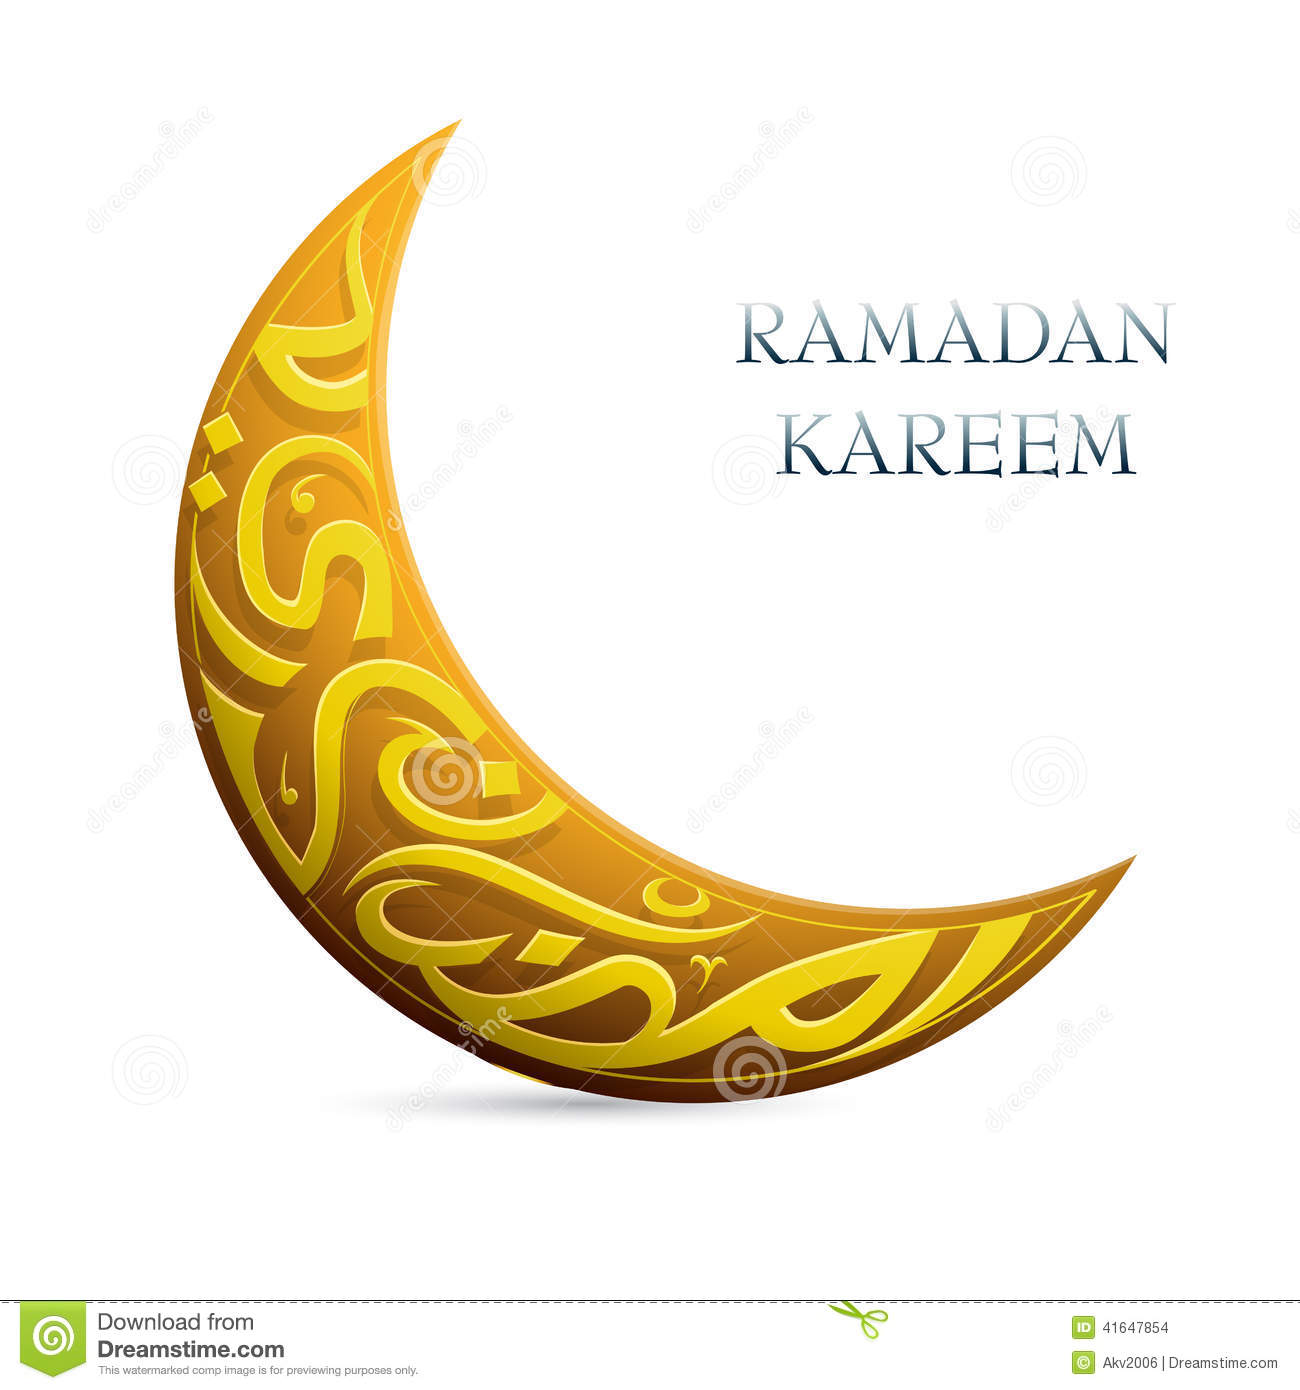 ... Greetings Shaped Into Crescent Moon Stock Vector - Image: 41647854